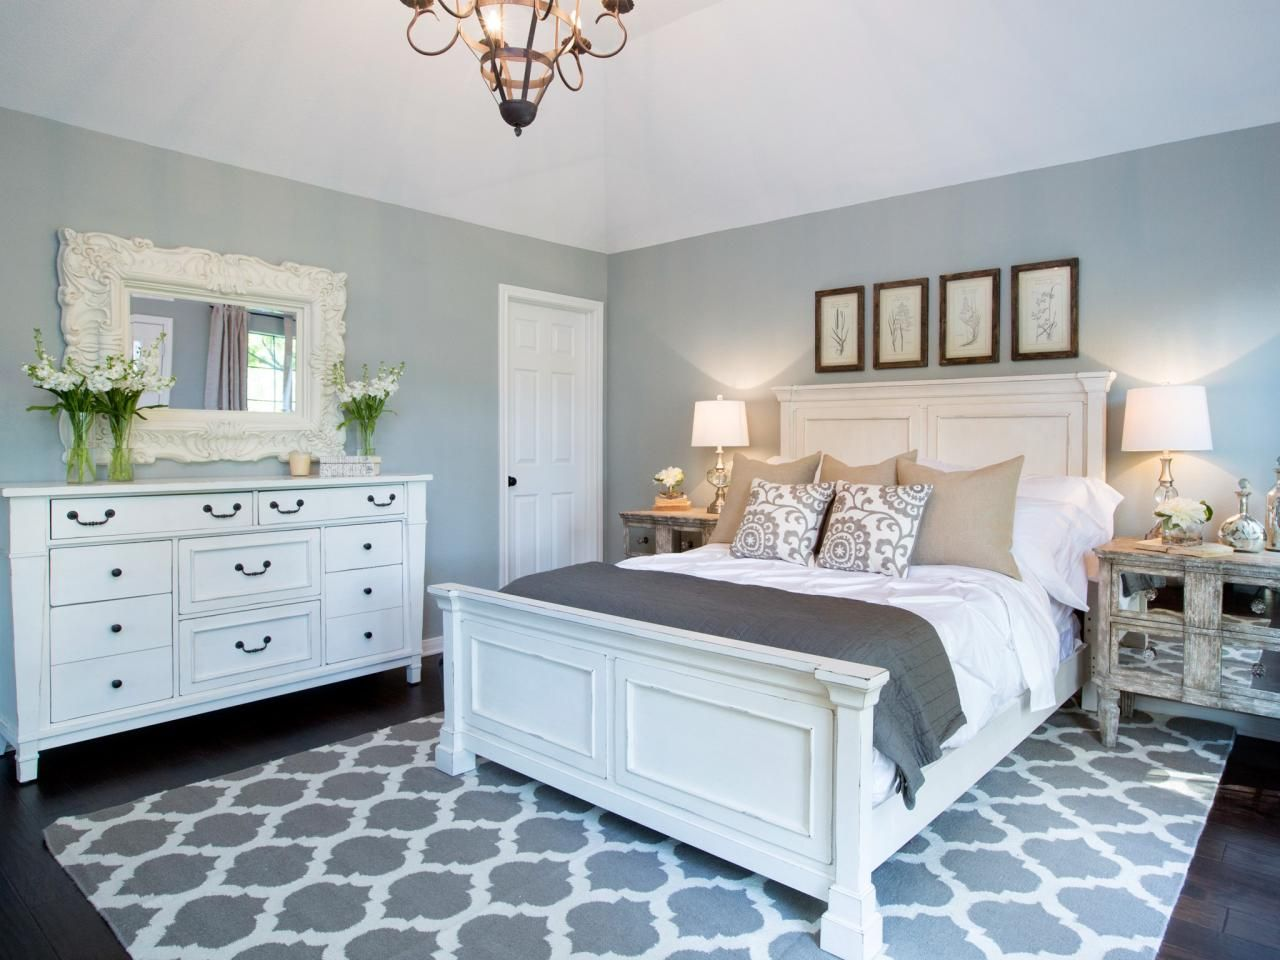 white bedroom furniture. Fixer Upper  Yours Mine Ours and a Home on the River Pretty BedroomMaster Bedroom Furniture IdeasBedrooms With White Joanna